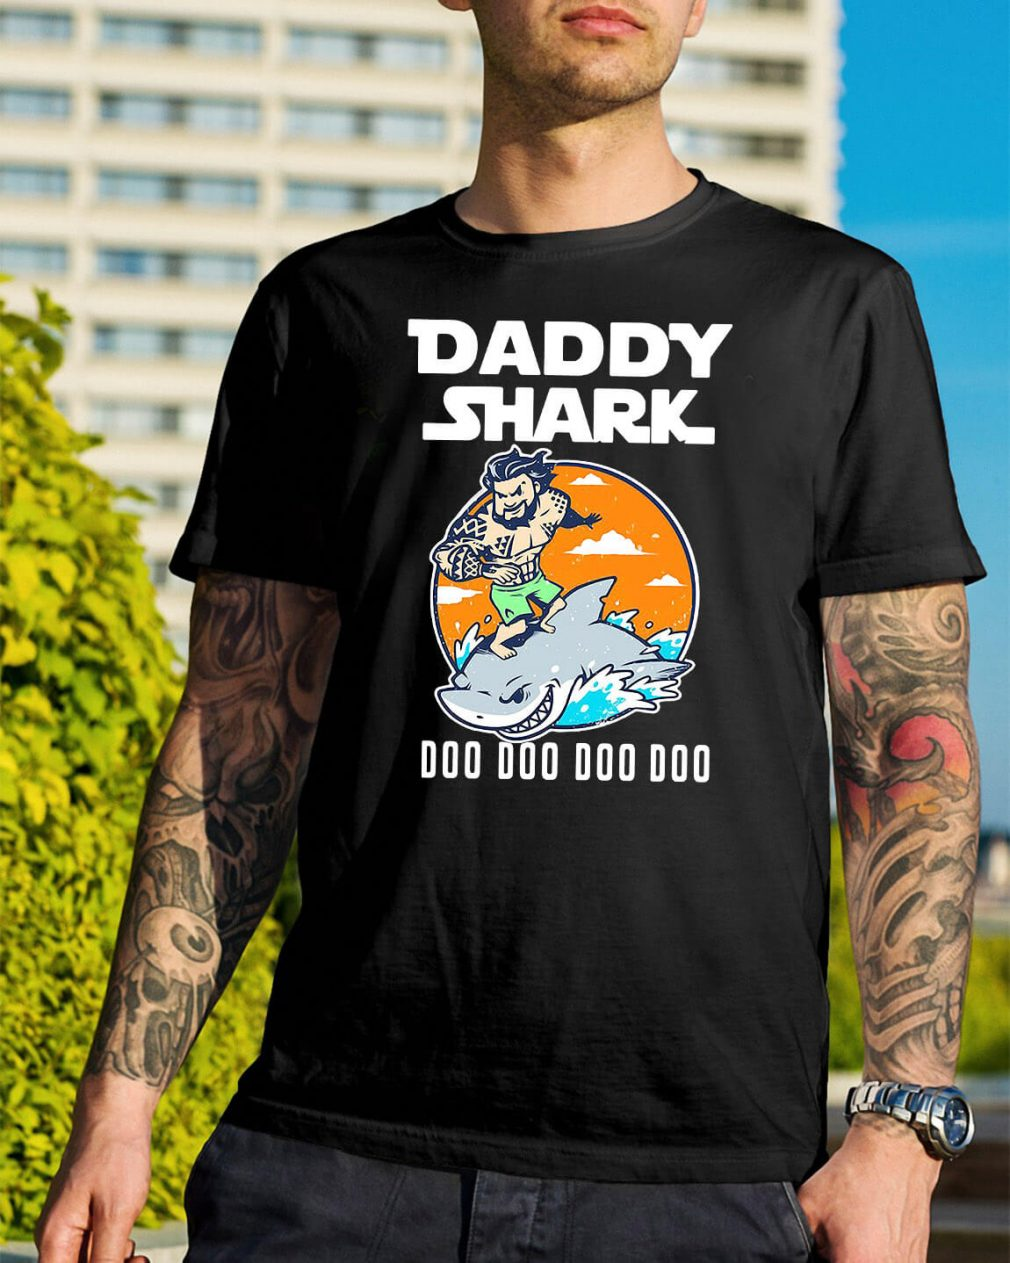 Aquaman Daddy Shark doo doo doo shirt